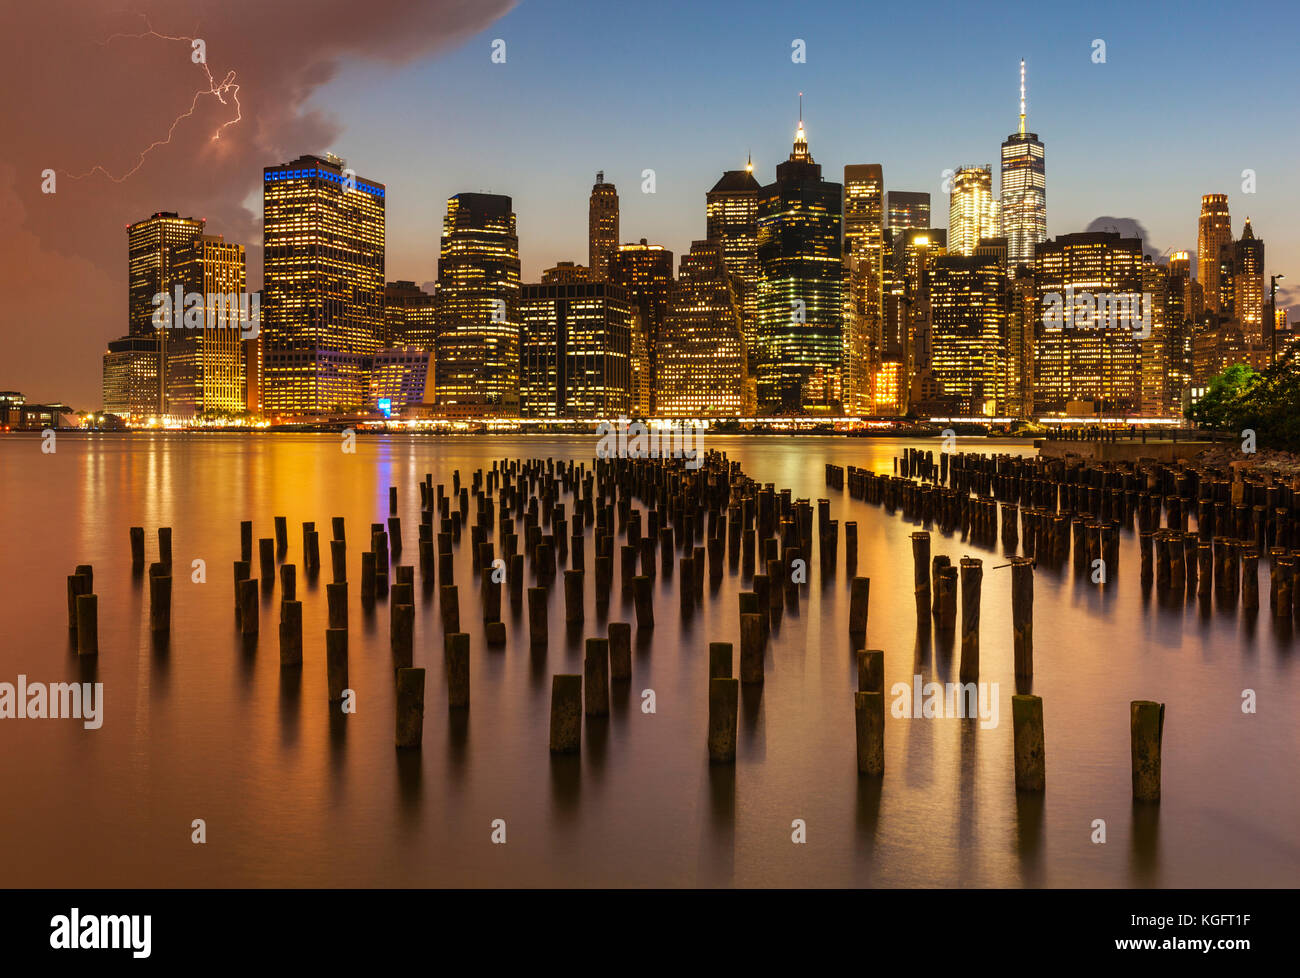 New York Skyline New York USA New York Manhattan Skyline stürmischen Himmel über Manhattan, New York Skyline Stockbild